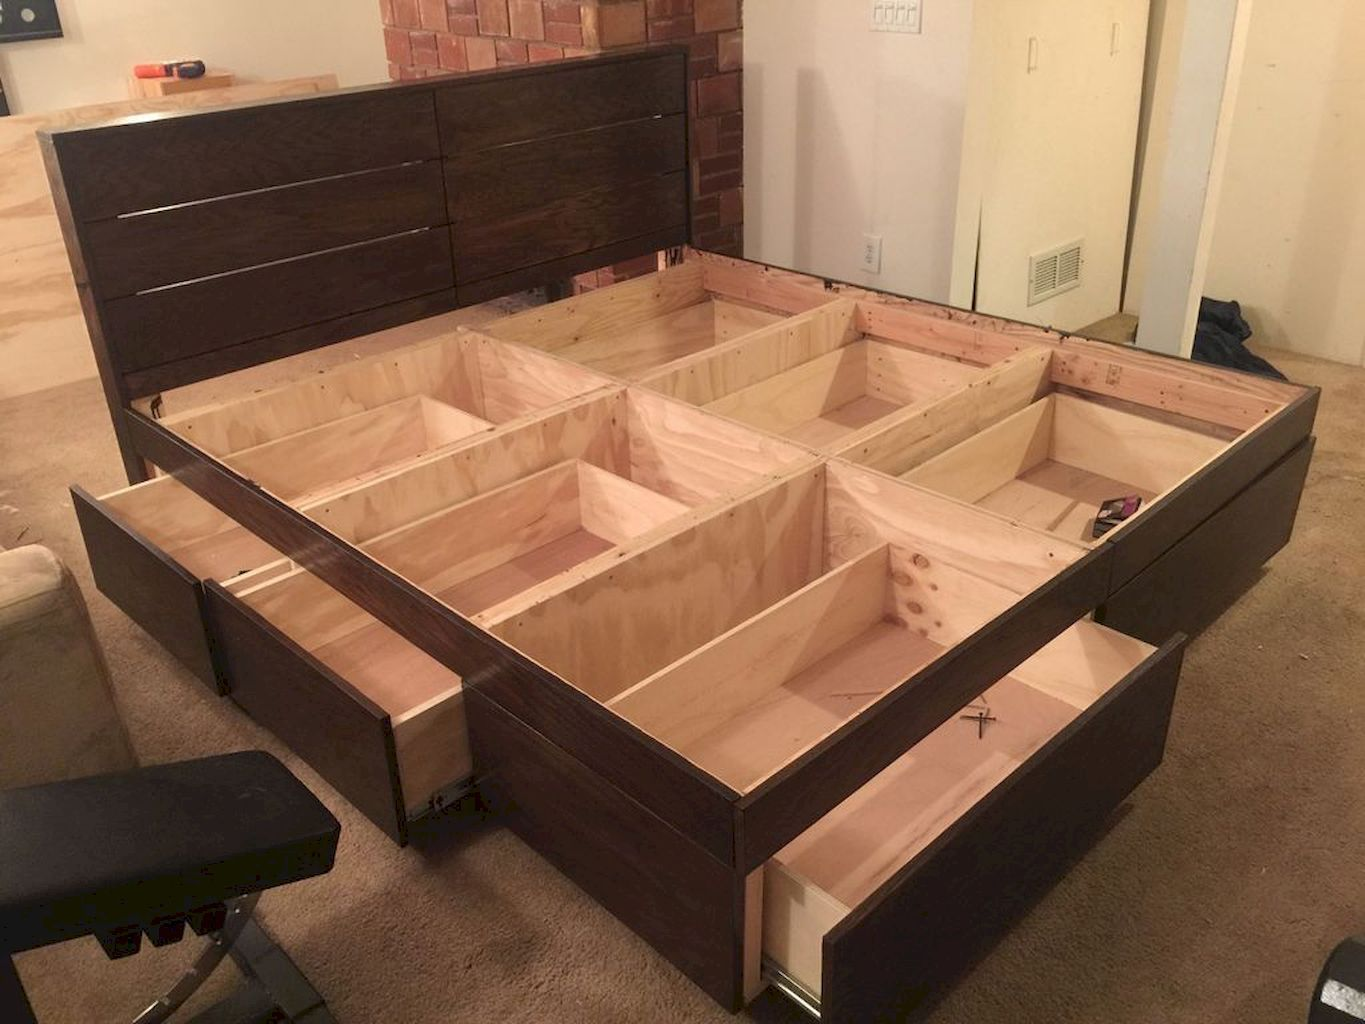 DIY Bed Frame with Storage